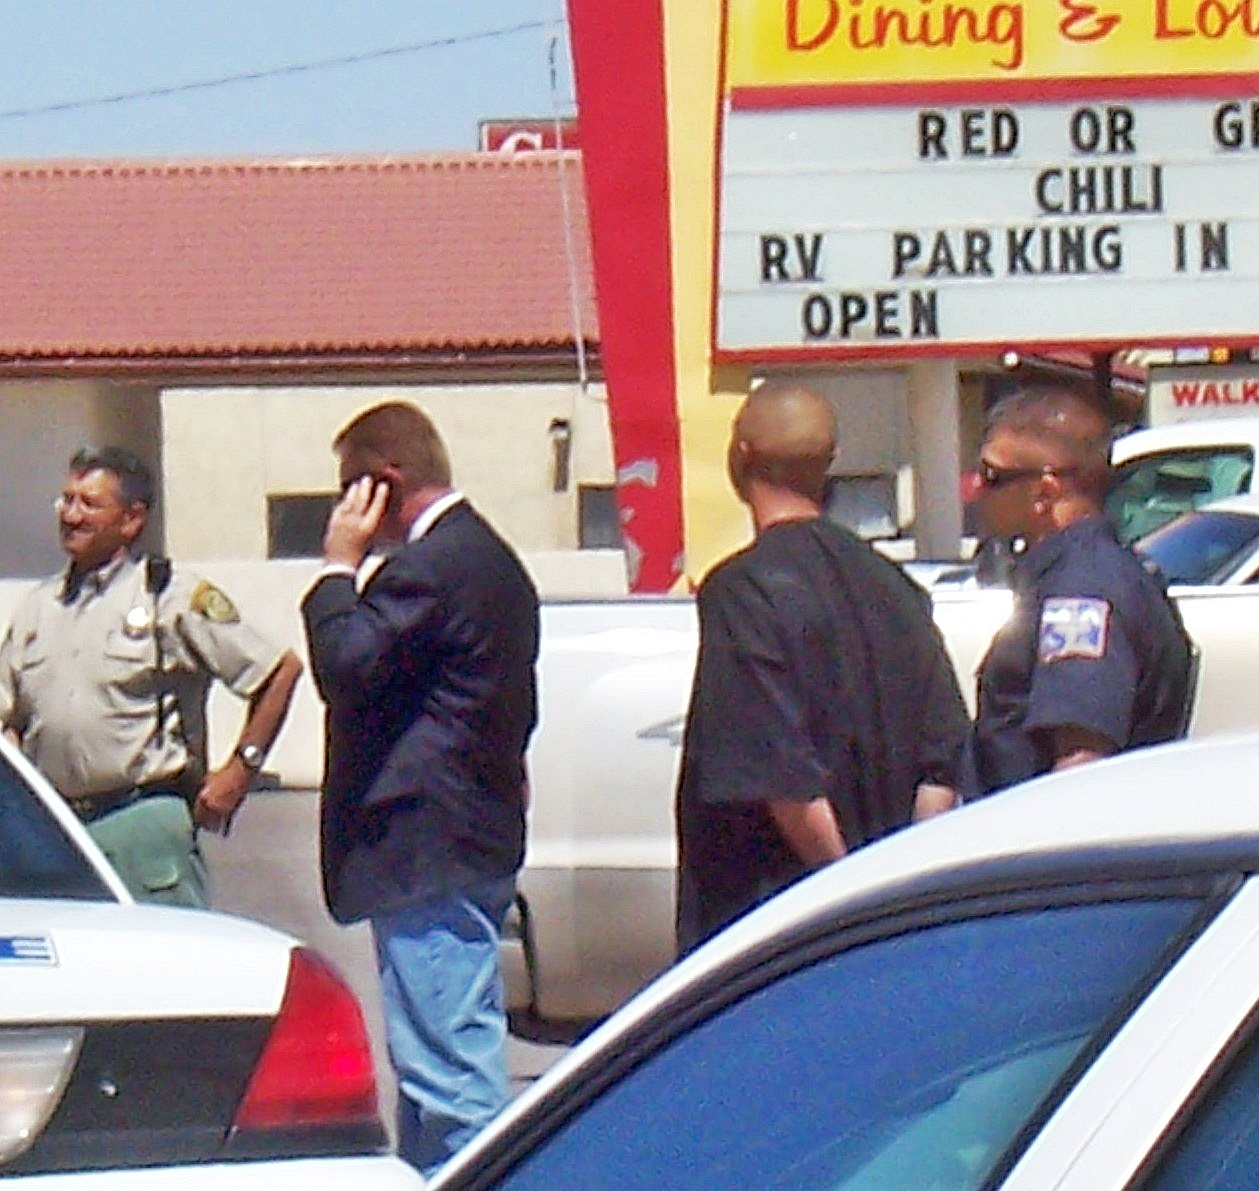 New mexico socorro county magdalena - Officers From The Socorro Police Department And County Sheriff S Department Responded To A Fight Between Four Men Wednesday At About 1 30 P M In The